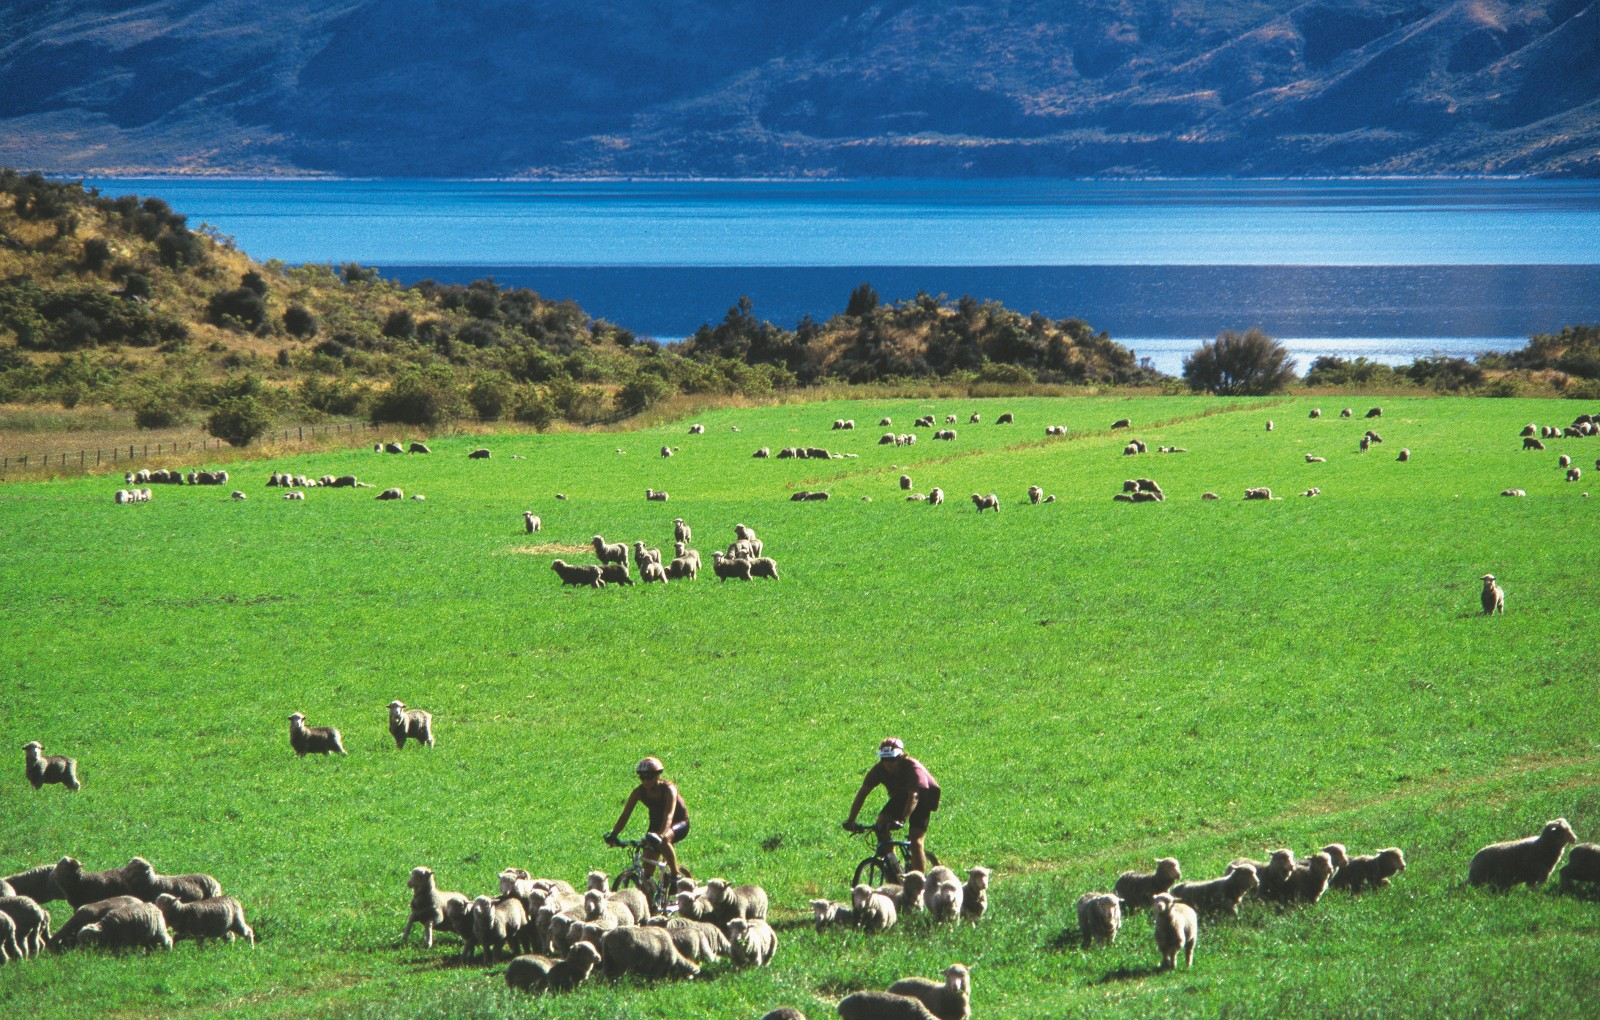 In outdoor circles, New Zealand is becoming as well known for its mountain biking as its sheep. And why not? We have the wide-open spaces, the climate and the trails to create pedalling perfection. In a place such as Wanaka, flanked by lake, mountain, forest and field, the multifaceted pleasure of a ride is always close at hand.